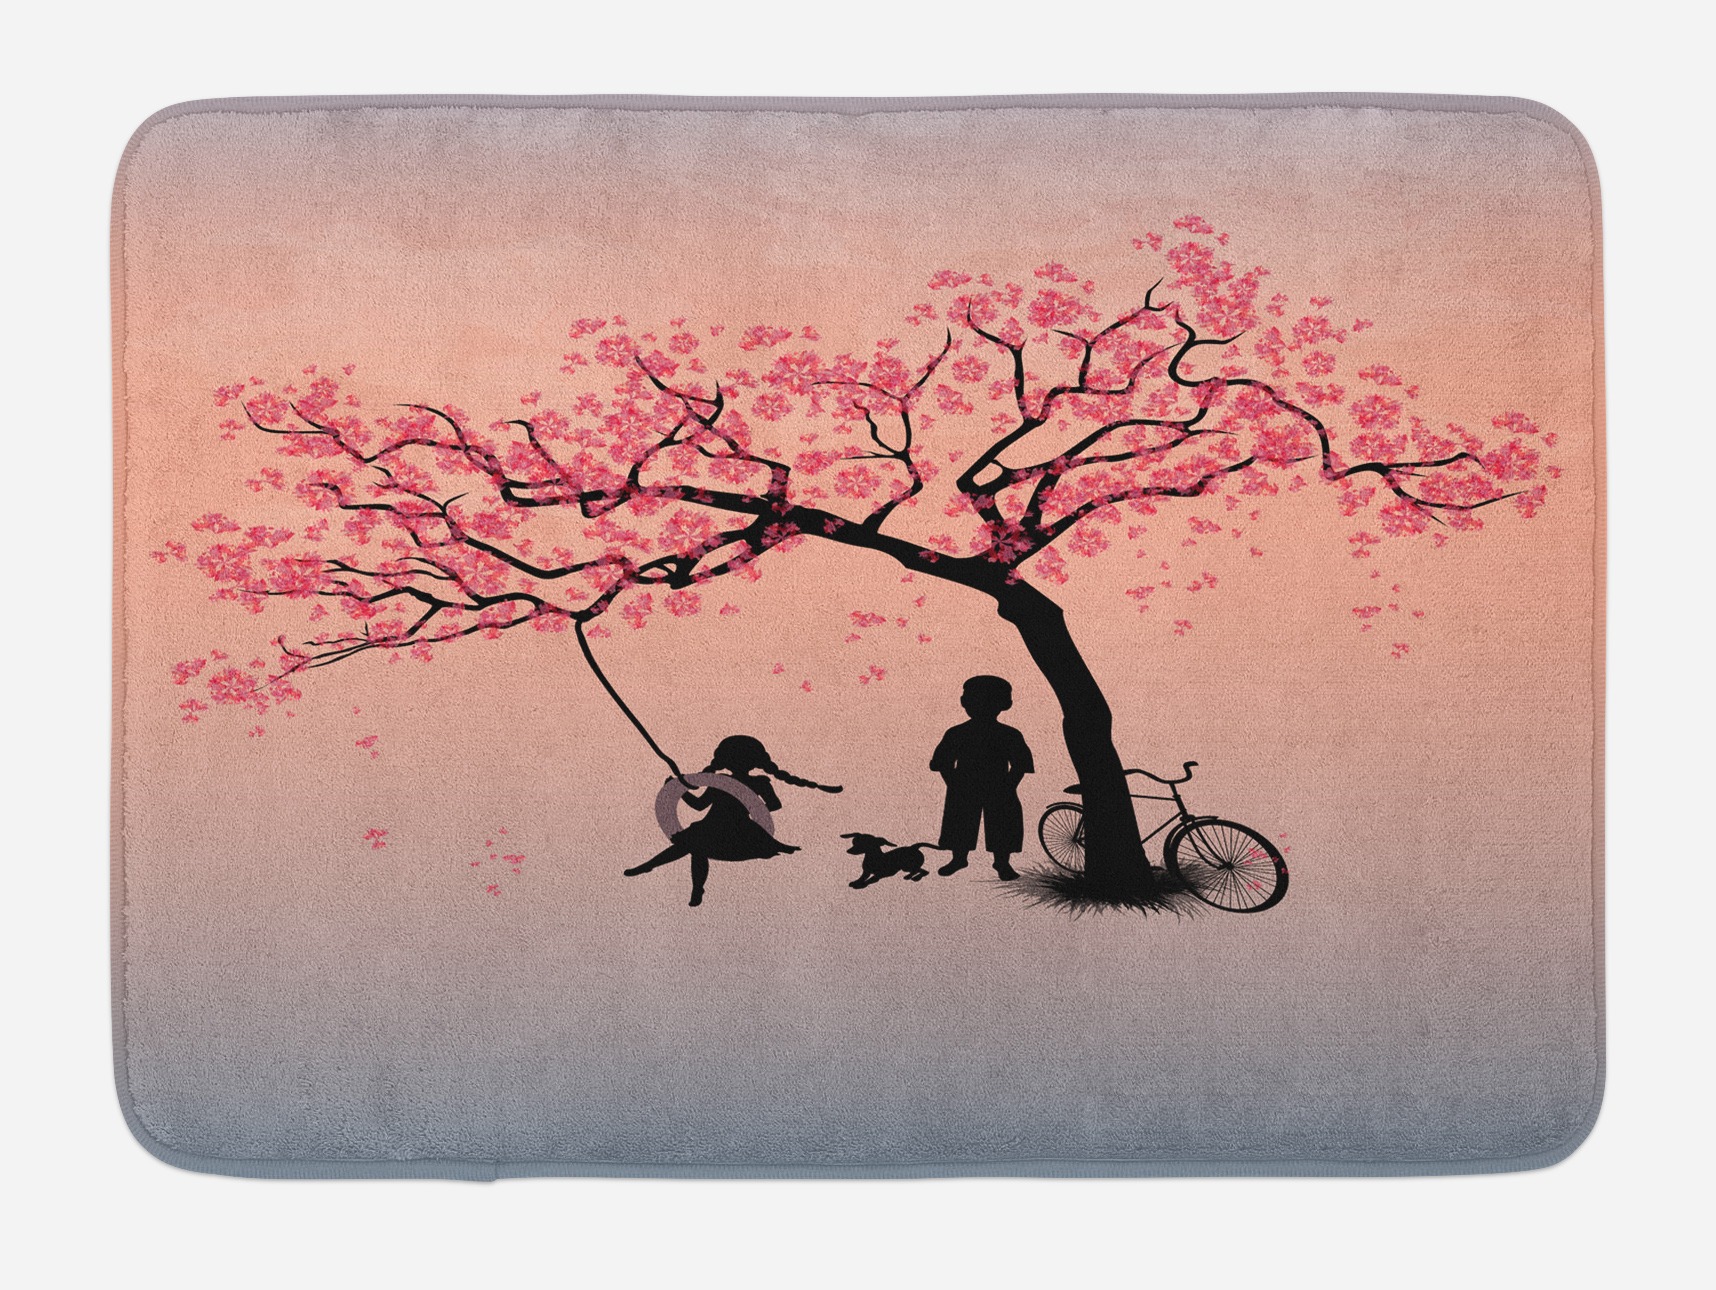 Tree of Life Bath Mat, Children Playing on a Tire Swing under Cherry Tree with Dog Blossom... by 3decor llc